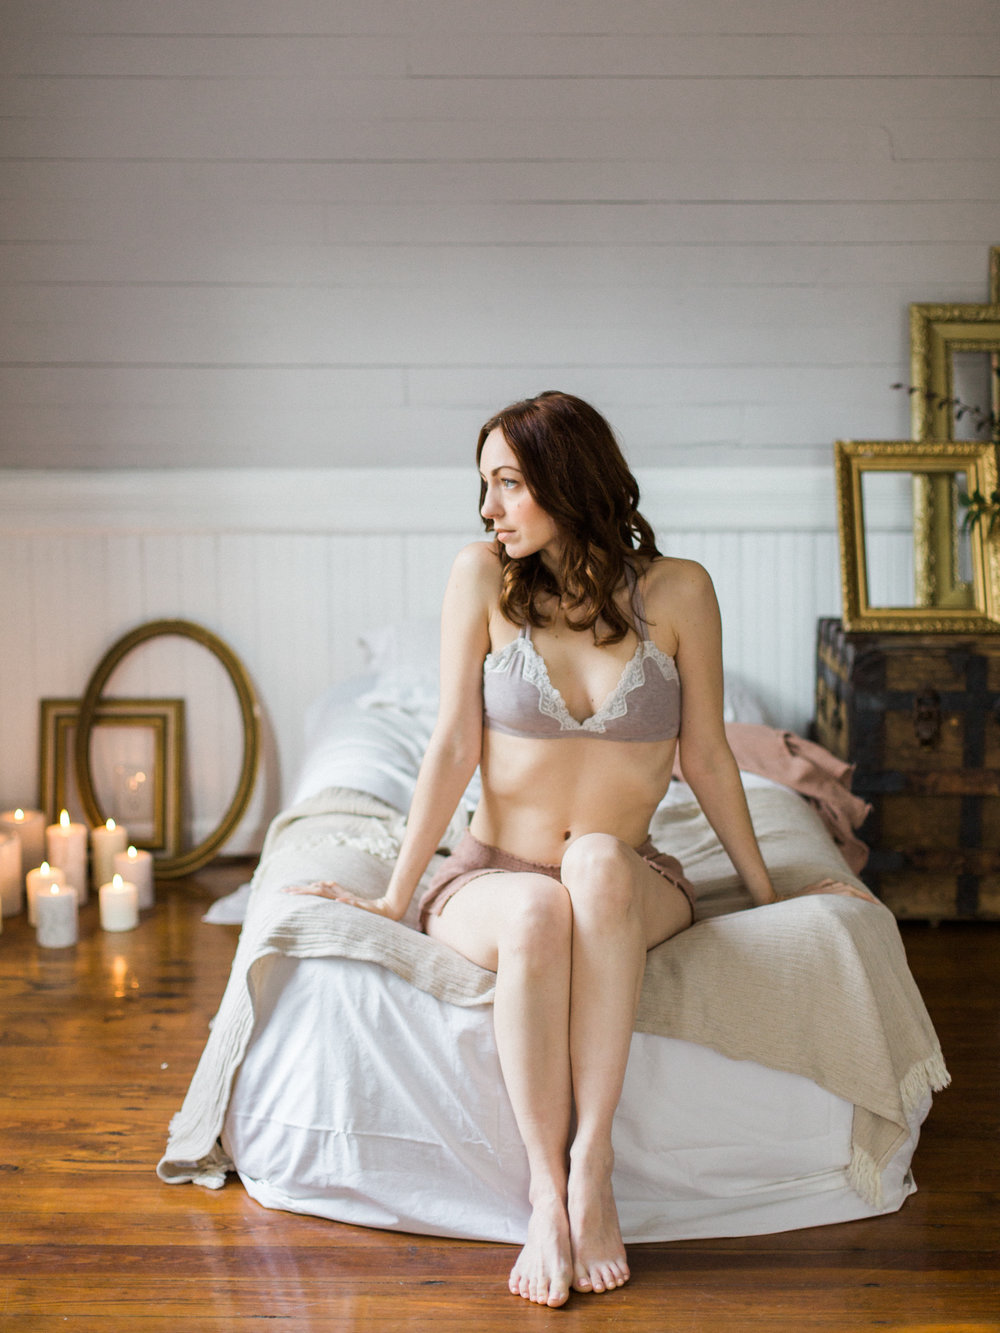 Warm Grey Cozy Home Boudoir on Film - Boudoir Collective